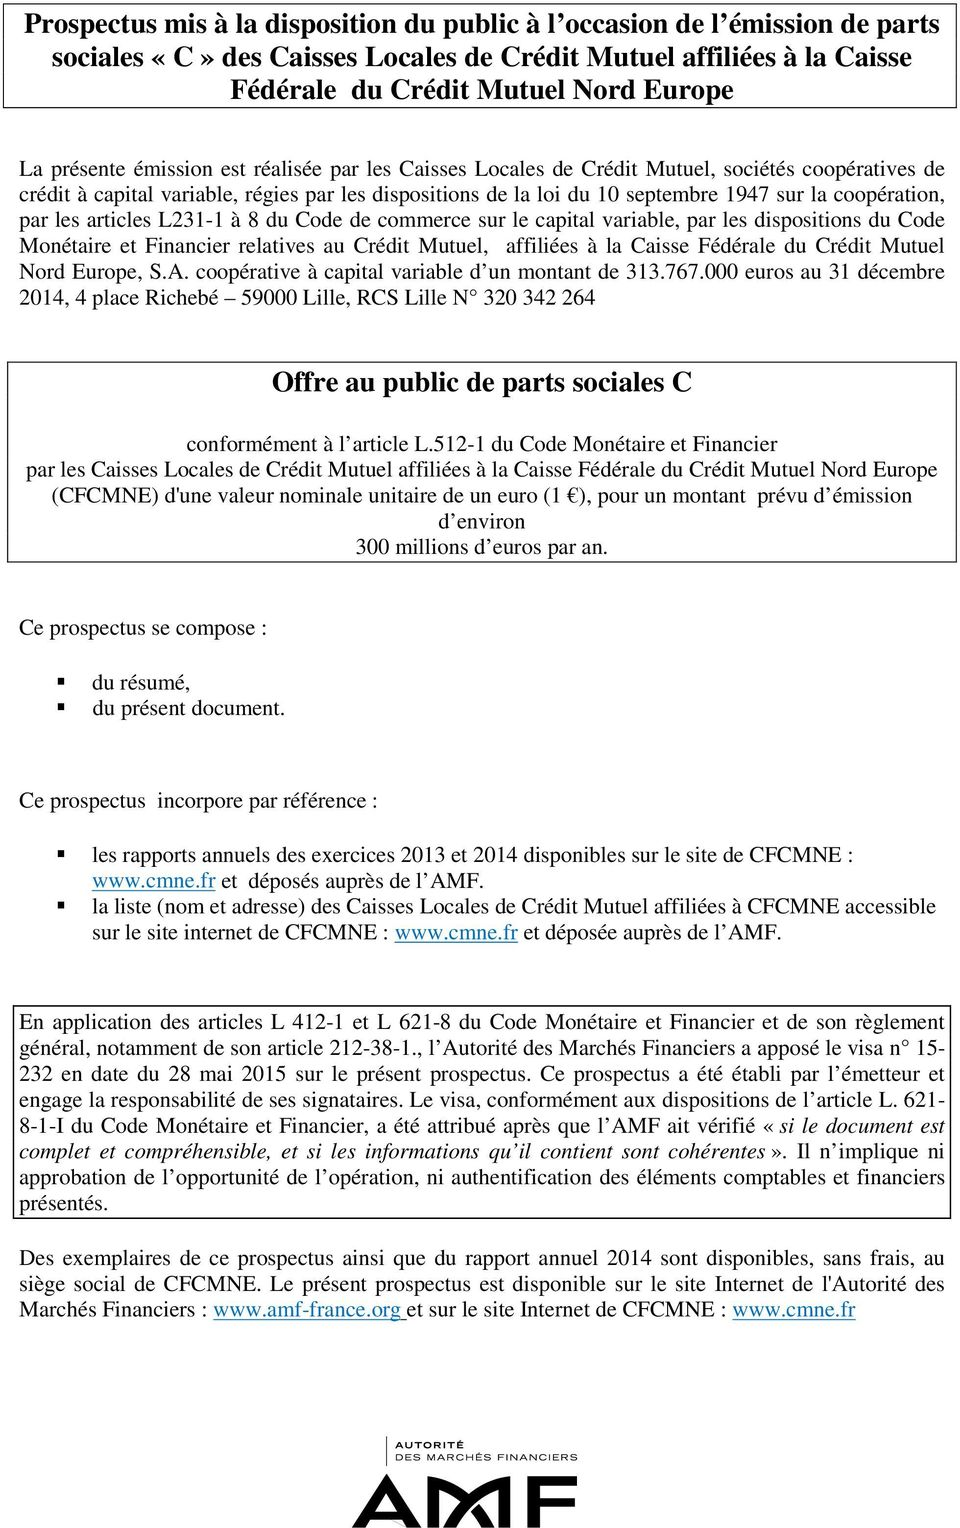 les articles L231-1 à 8 du Code de commerce sur le capital variable, par les dispositions du Code Monétaire et Financier relatives au Crédit Mutuel, affiliées à la Caisse Fédérale du Crédit Mutuel